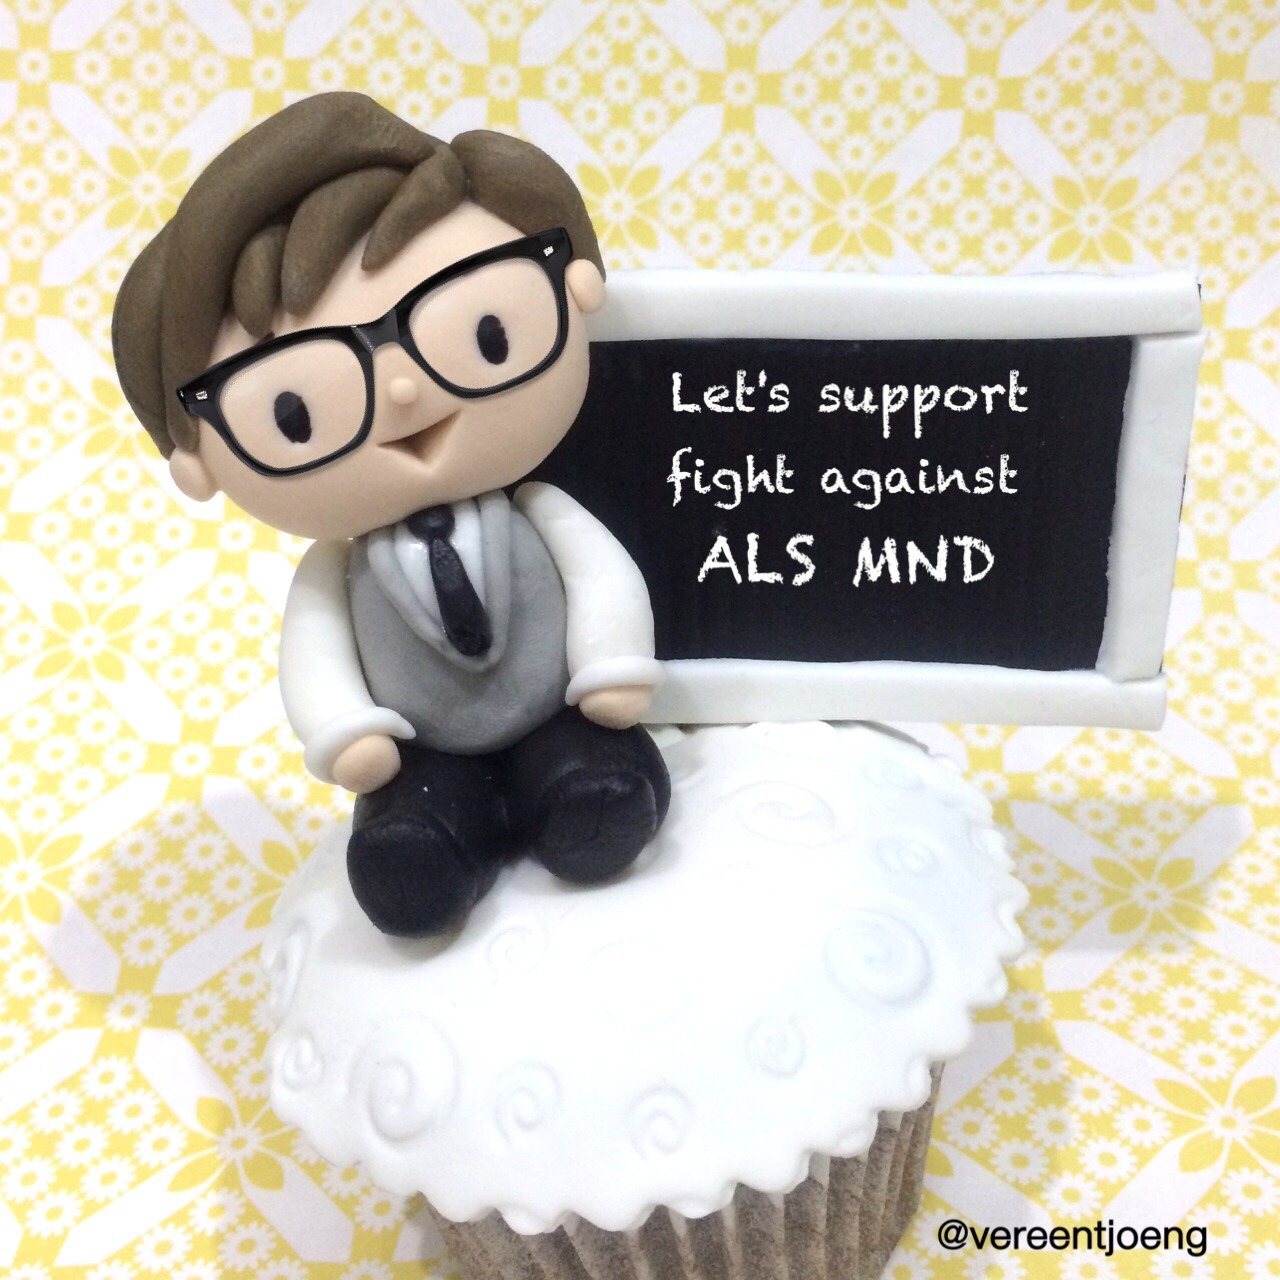 sodelightfully:</p> <p>Let's celebrate Benedict's Birthday by support the fight against ALS MND, donate here http://web.alsa.org/site/TR?px=4109564&fr_id=10054&pg=personal#.U6Sq3XG9Kc0 :D</p> <p>awww :)